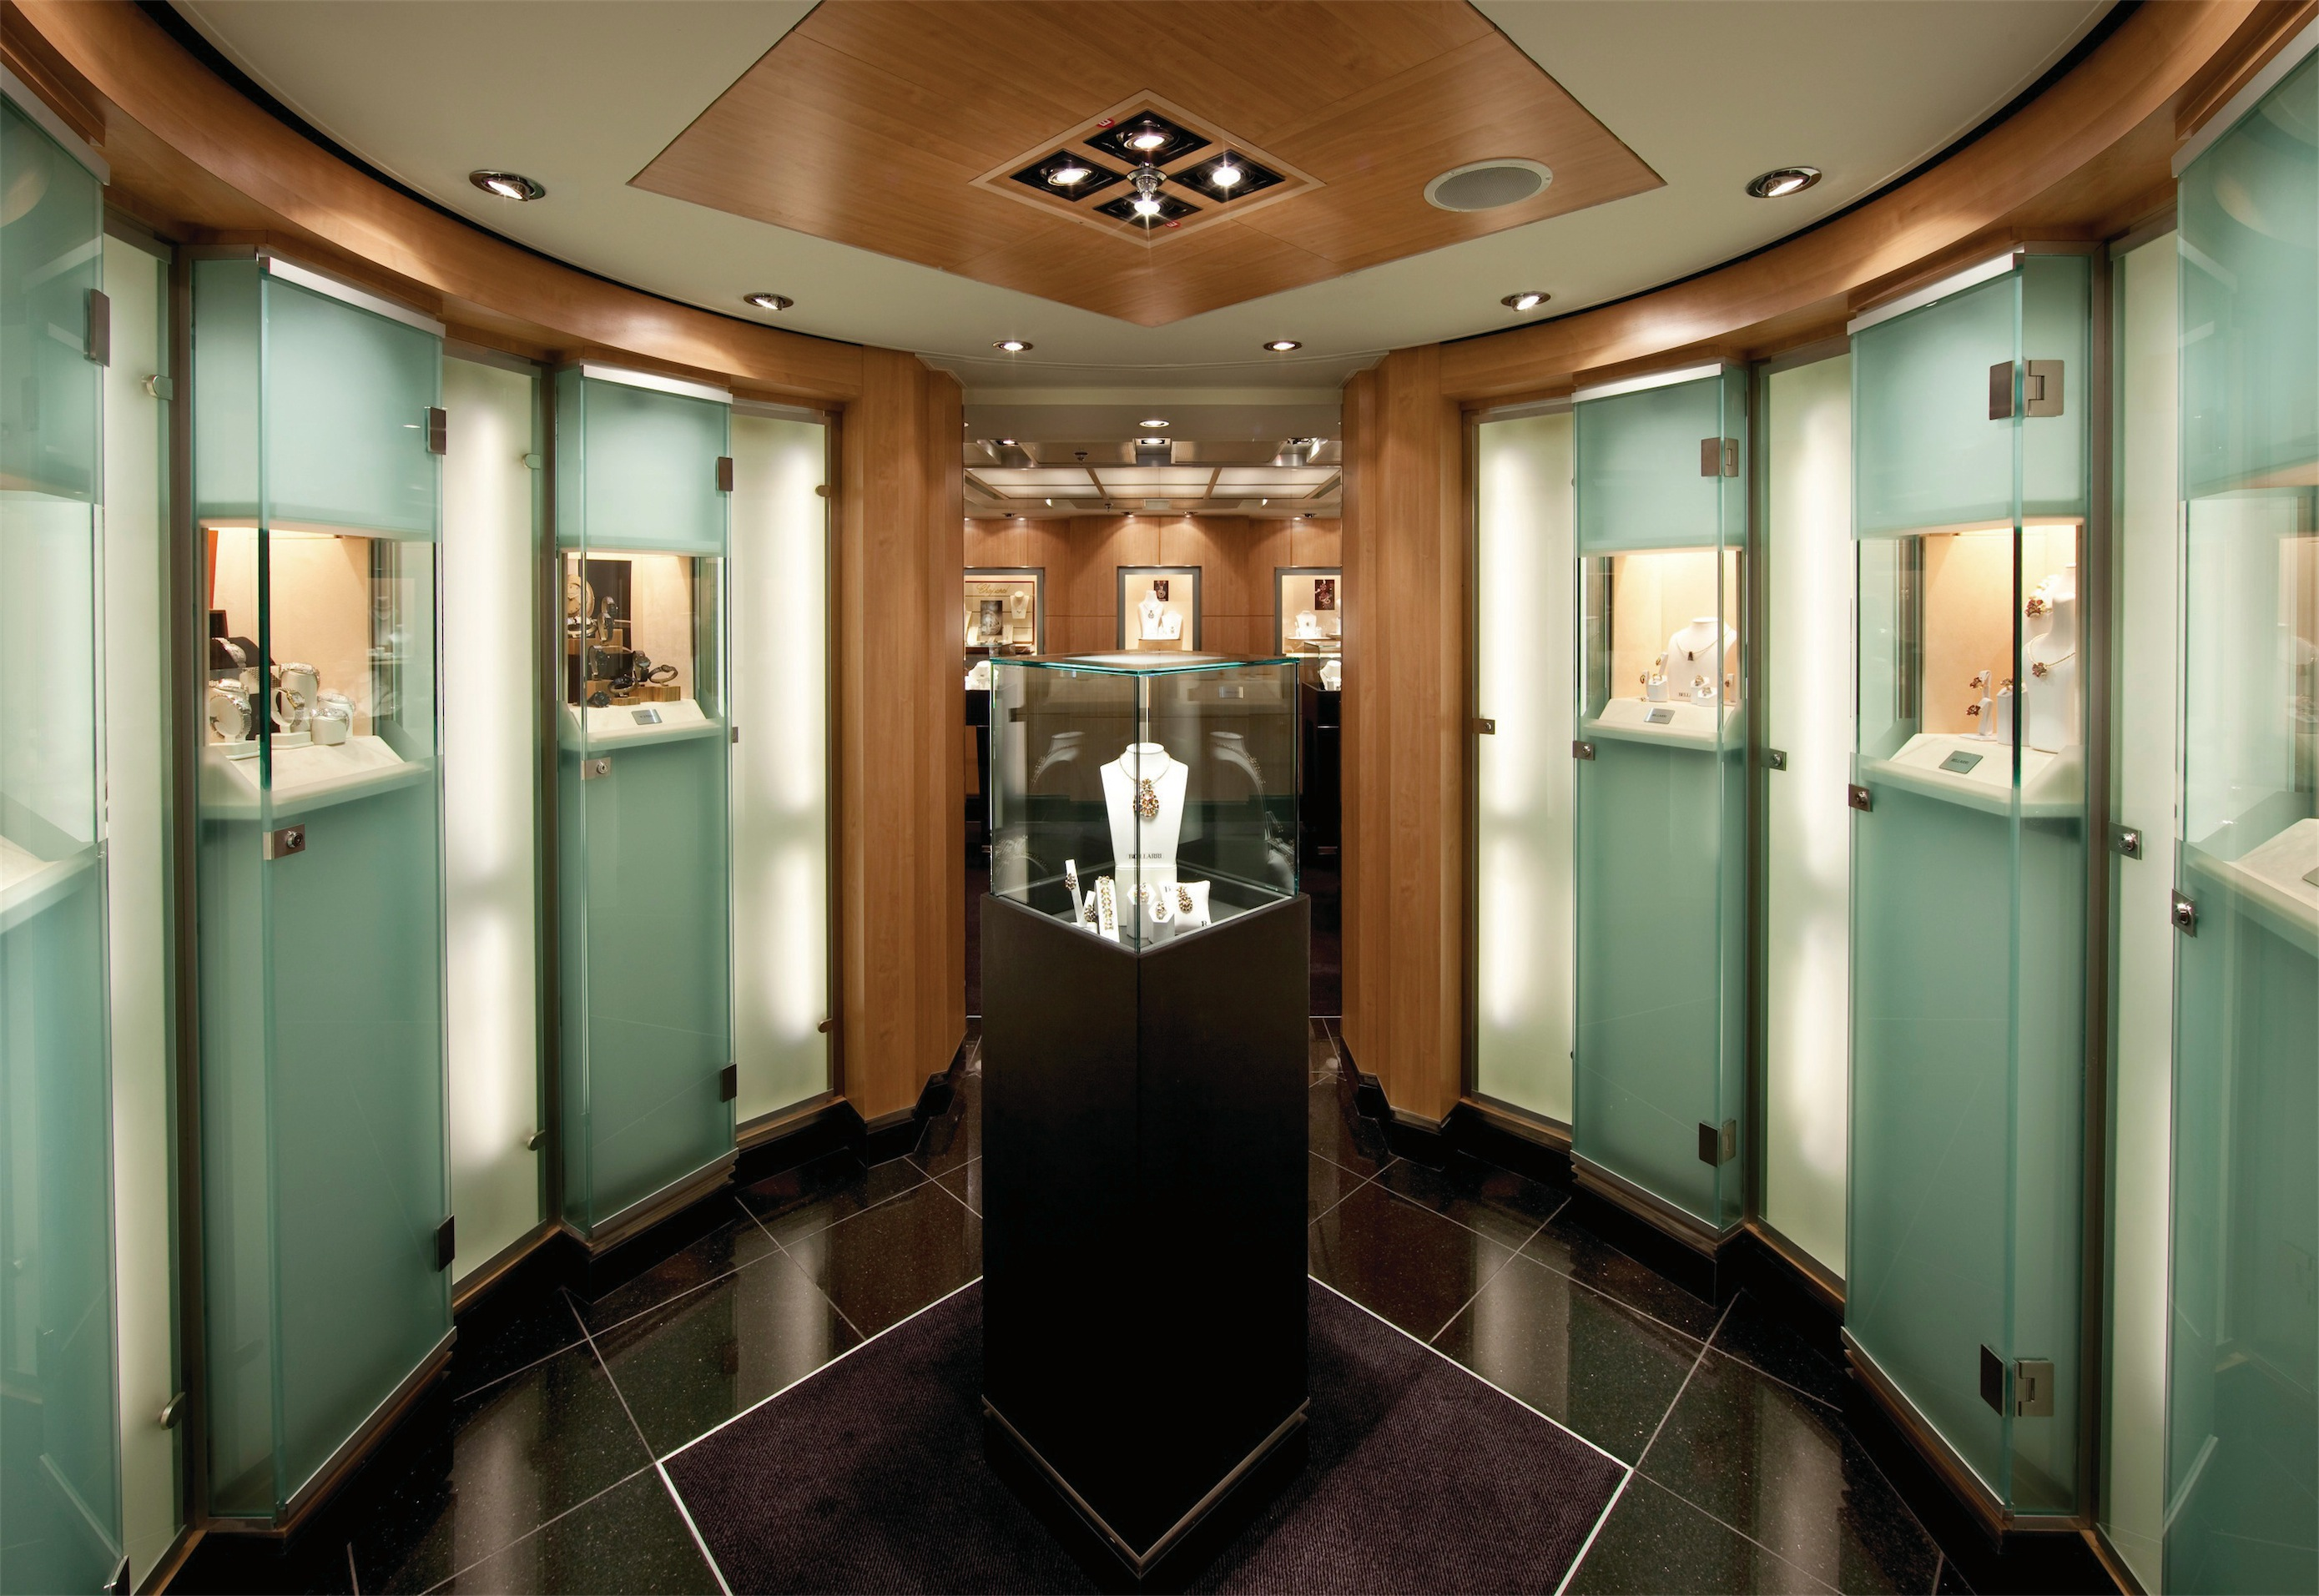 Seabourn Odyssey Class Interior The Collection.jpg